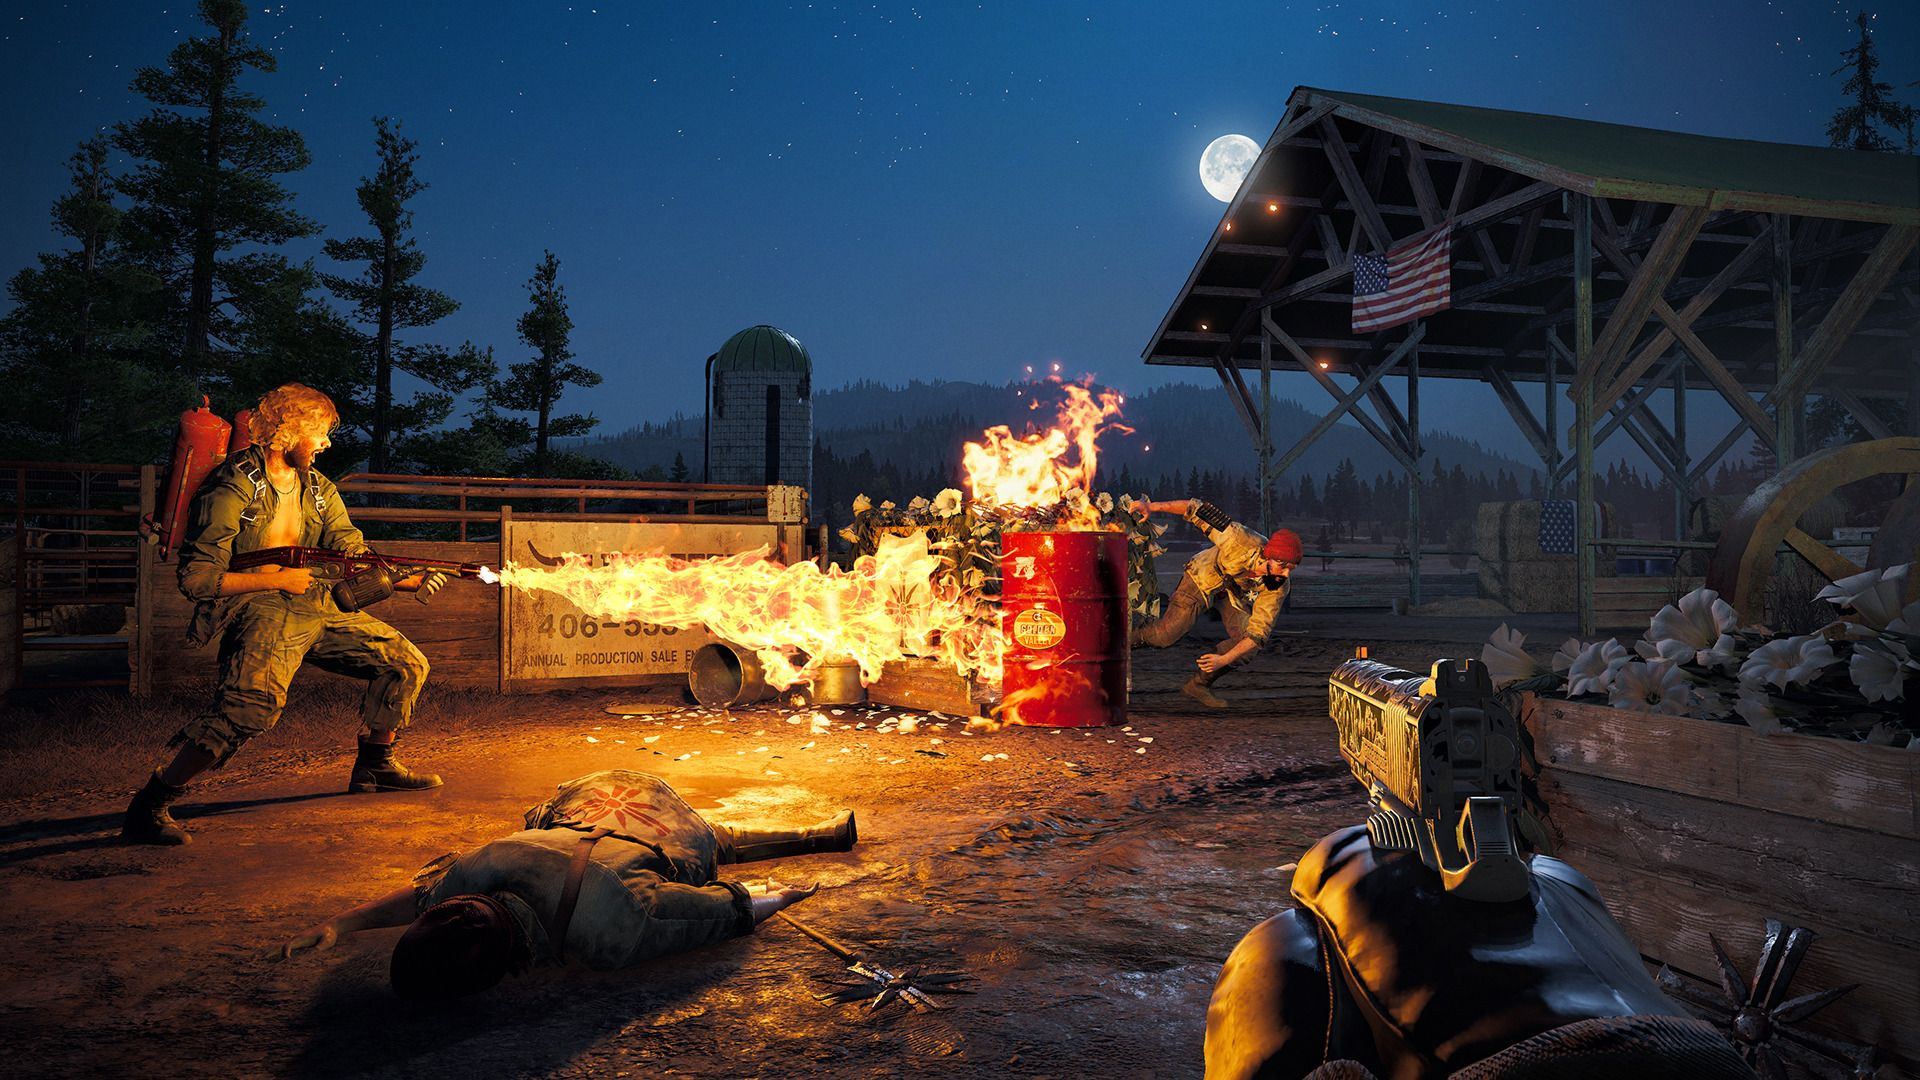 far cry guns for hire best companions fight with friends tips guide how to get unlock all